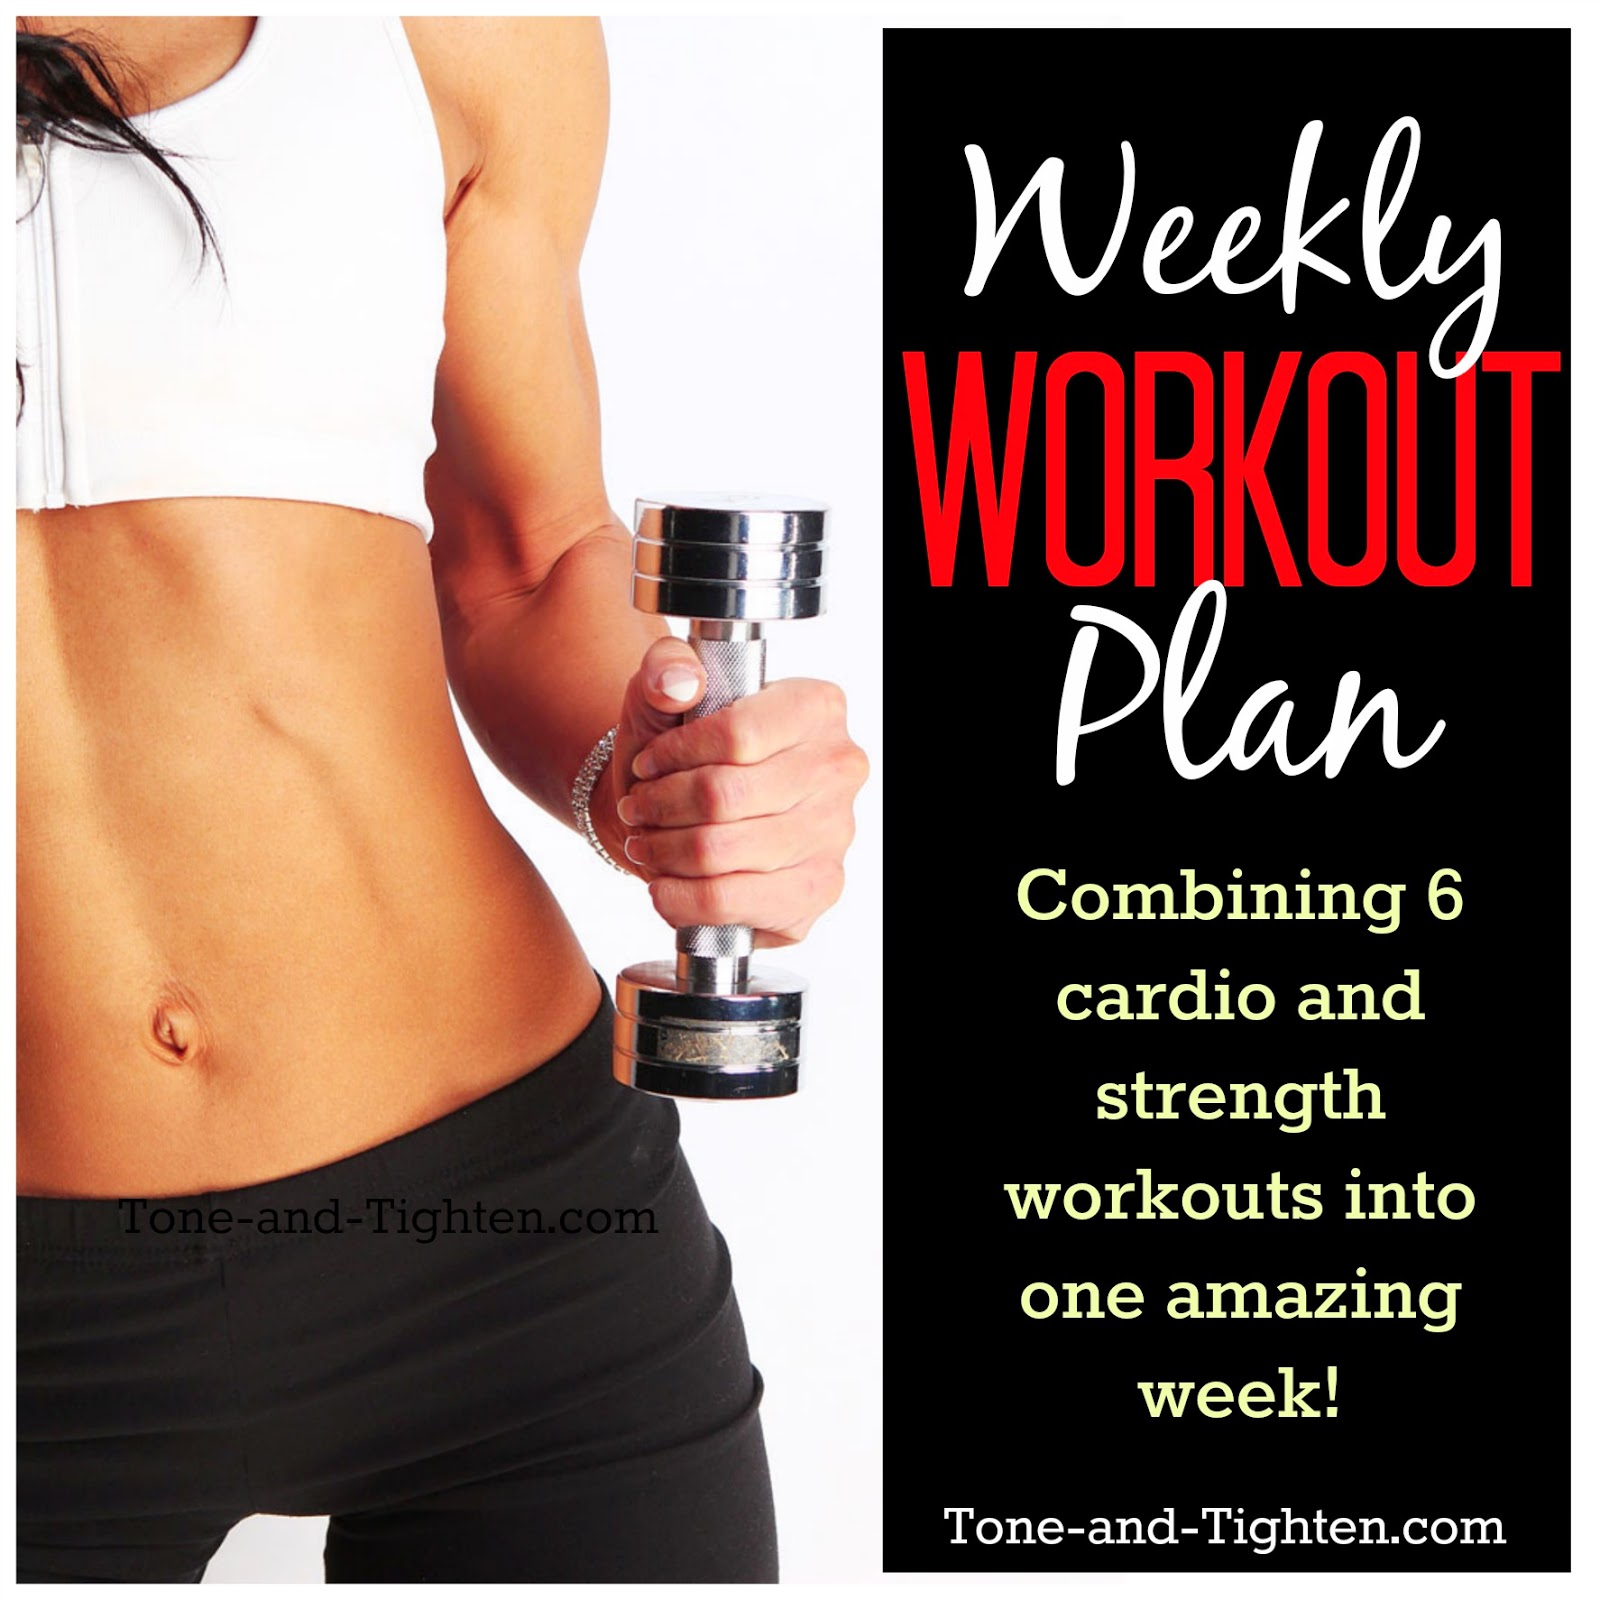 Weekly Workout Plan Cardio and Strength Cross Training 6 days – Weekly Workout Plan